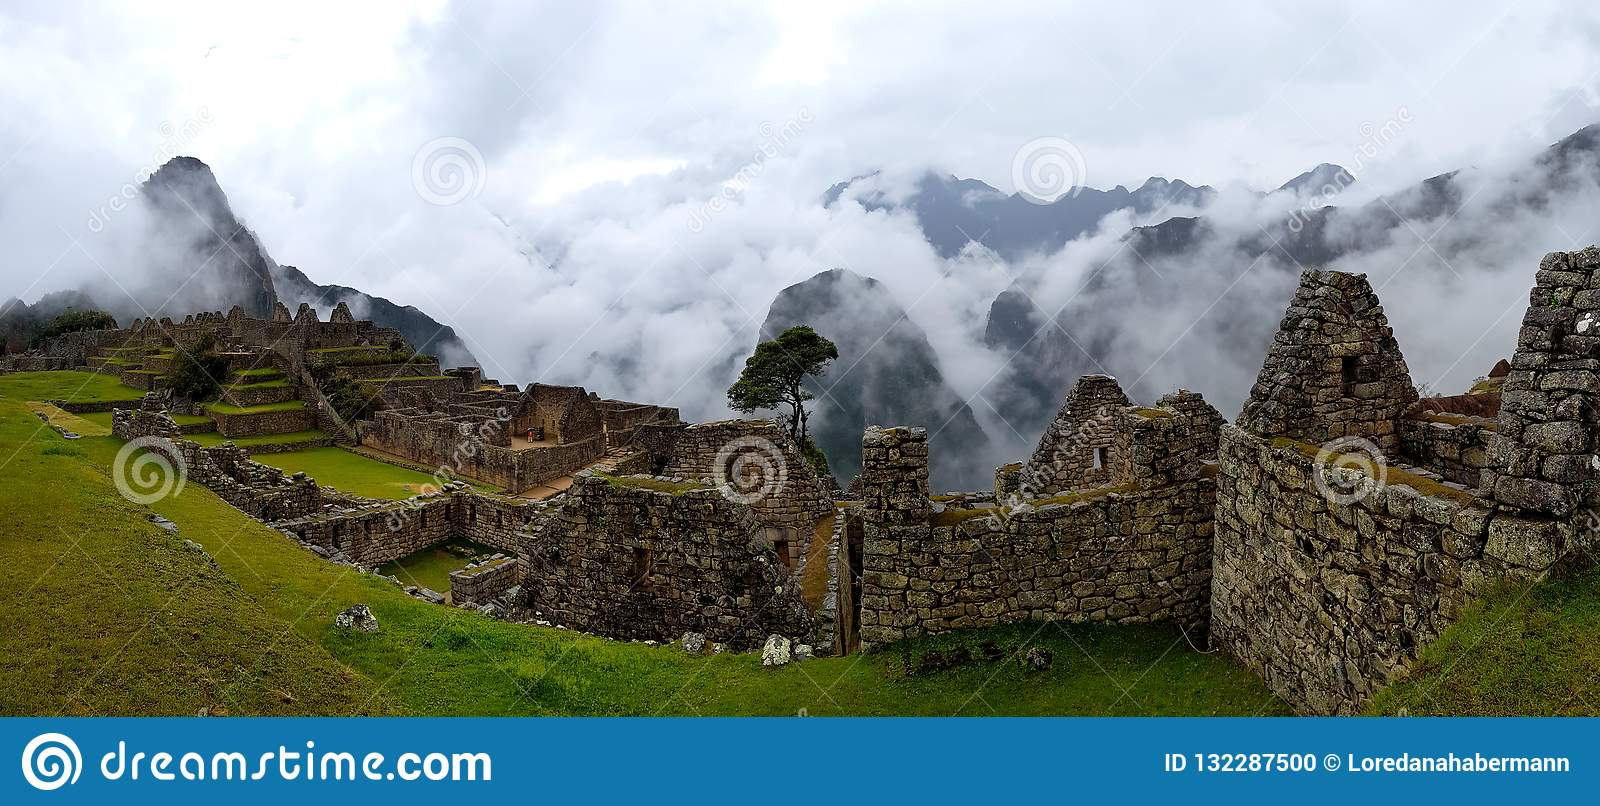 Machu Picchu, Incnca ruins in the Peruvian Andes